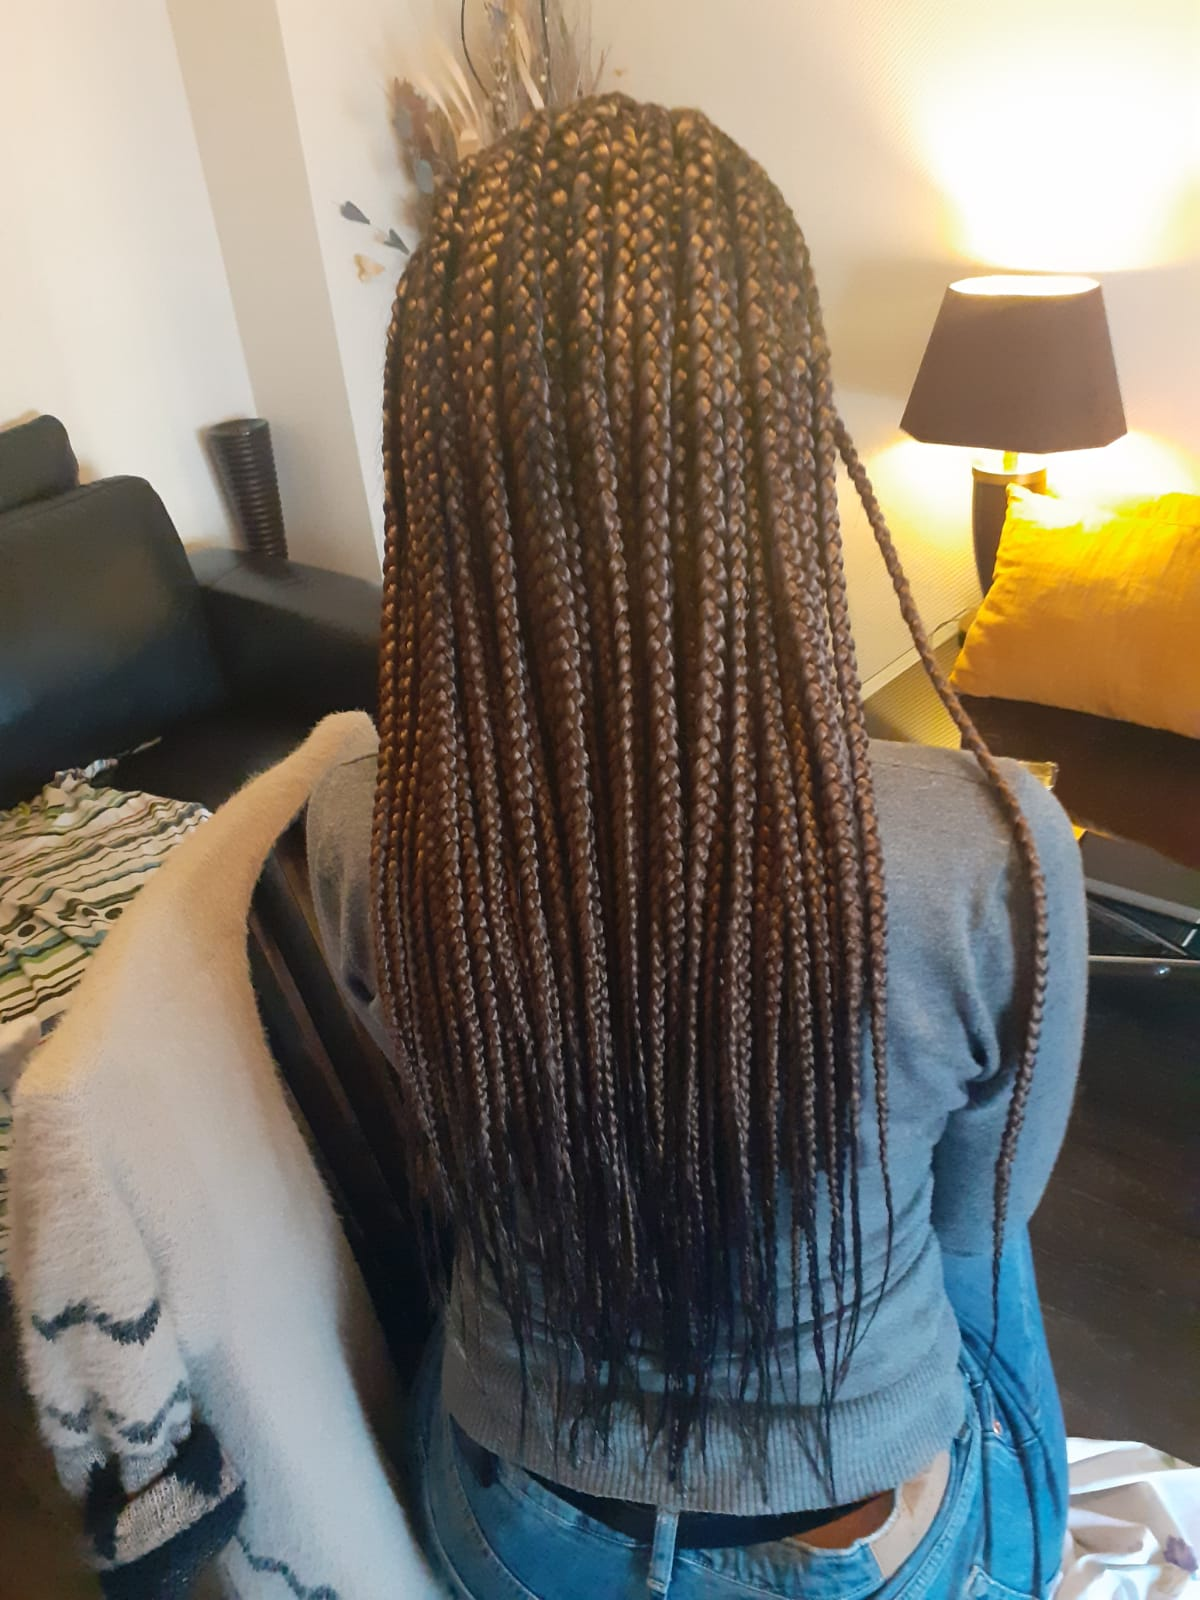 salon de coiffure afro tresse tresses box braids crochet braids vanilles tissages paris 75 77 78 91 92 93 94 95 VZIGGFBK